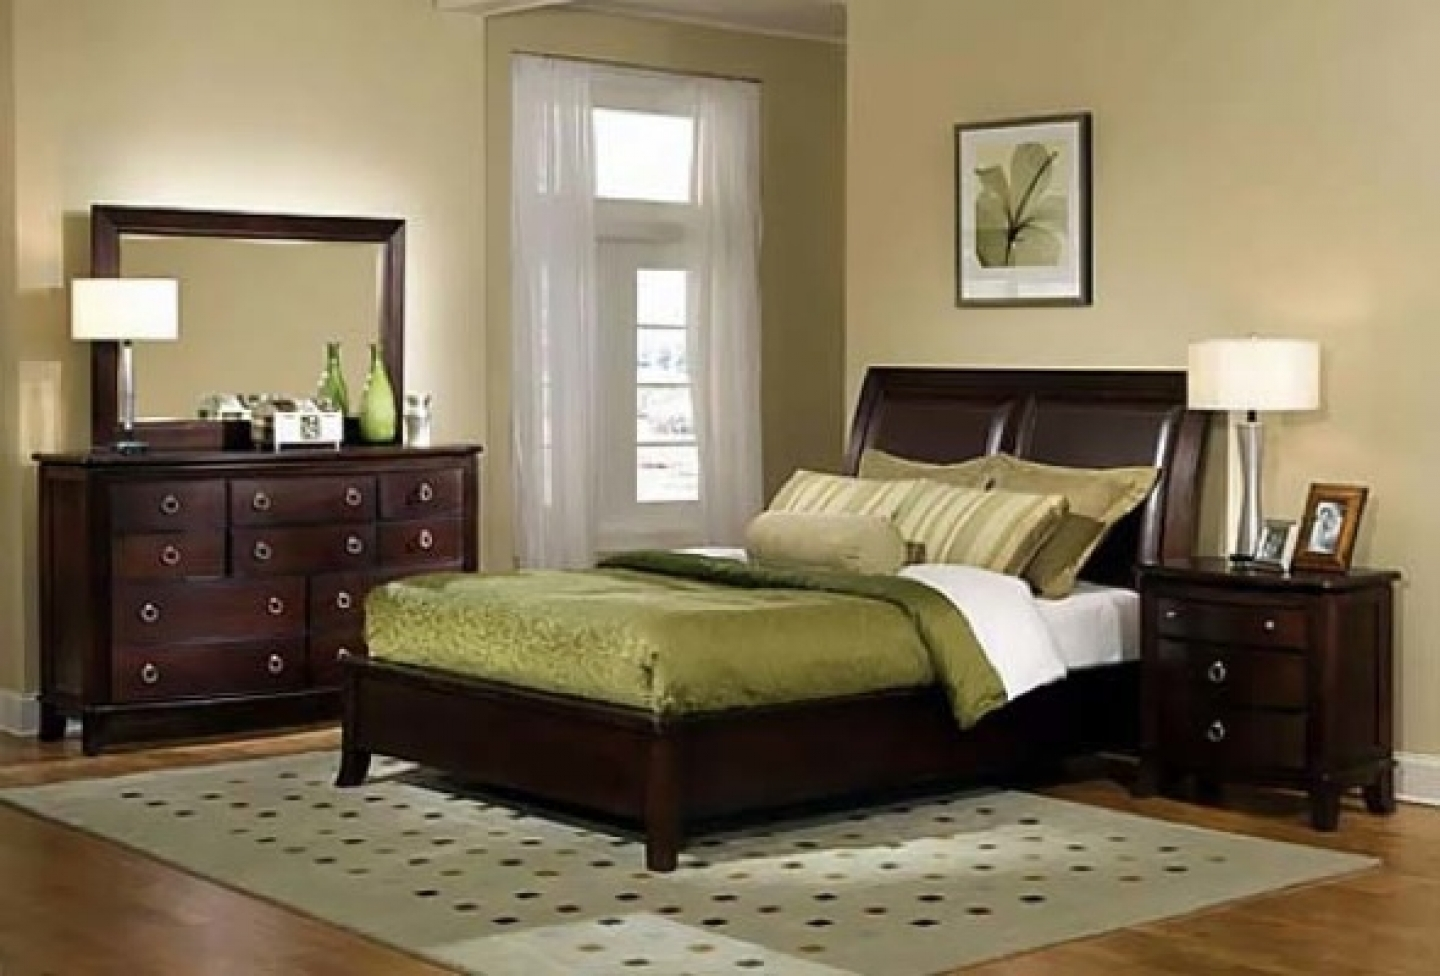 neutral color bedroom ideas photo - 2